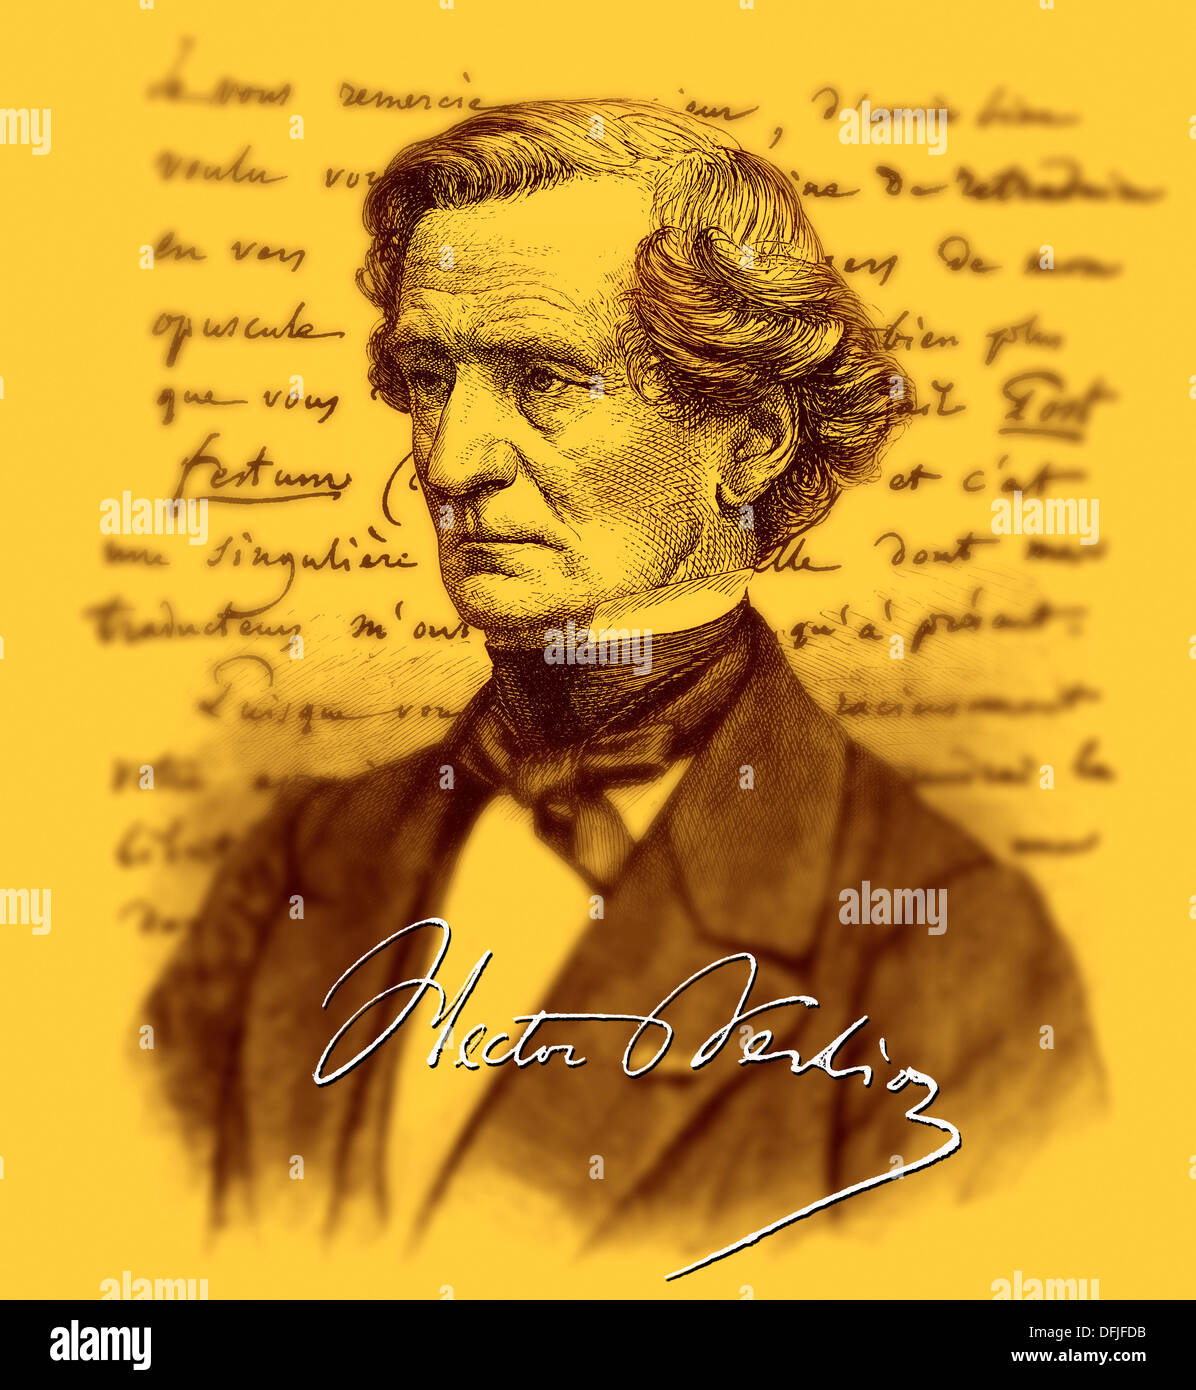 hand-written text and portrait of Louis Hector Berlioz - Stock Image